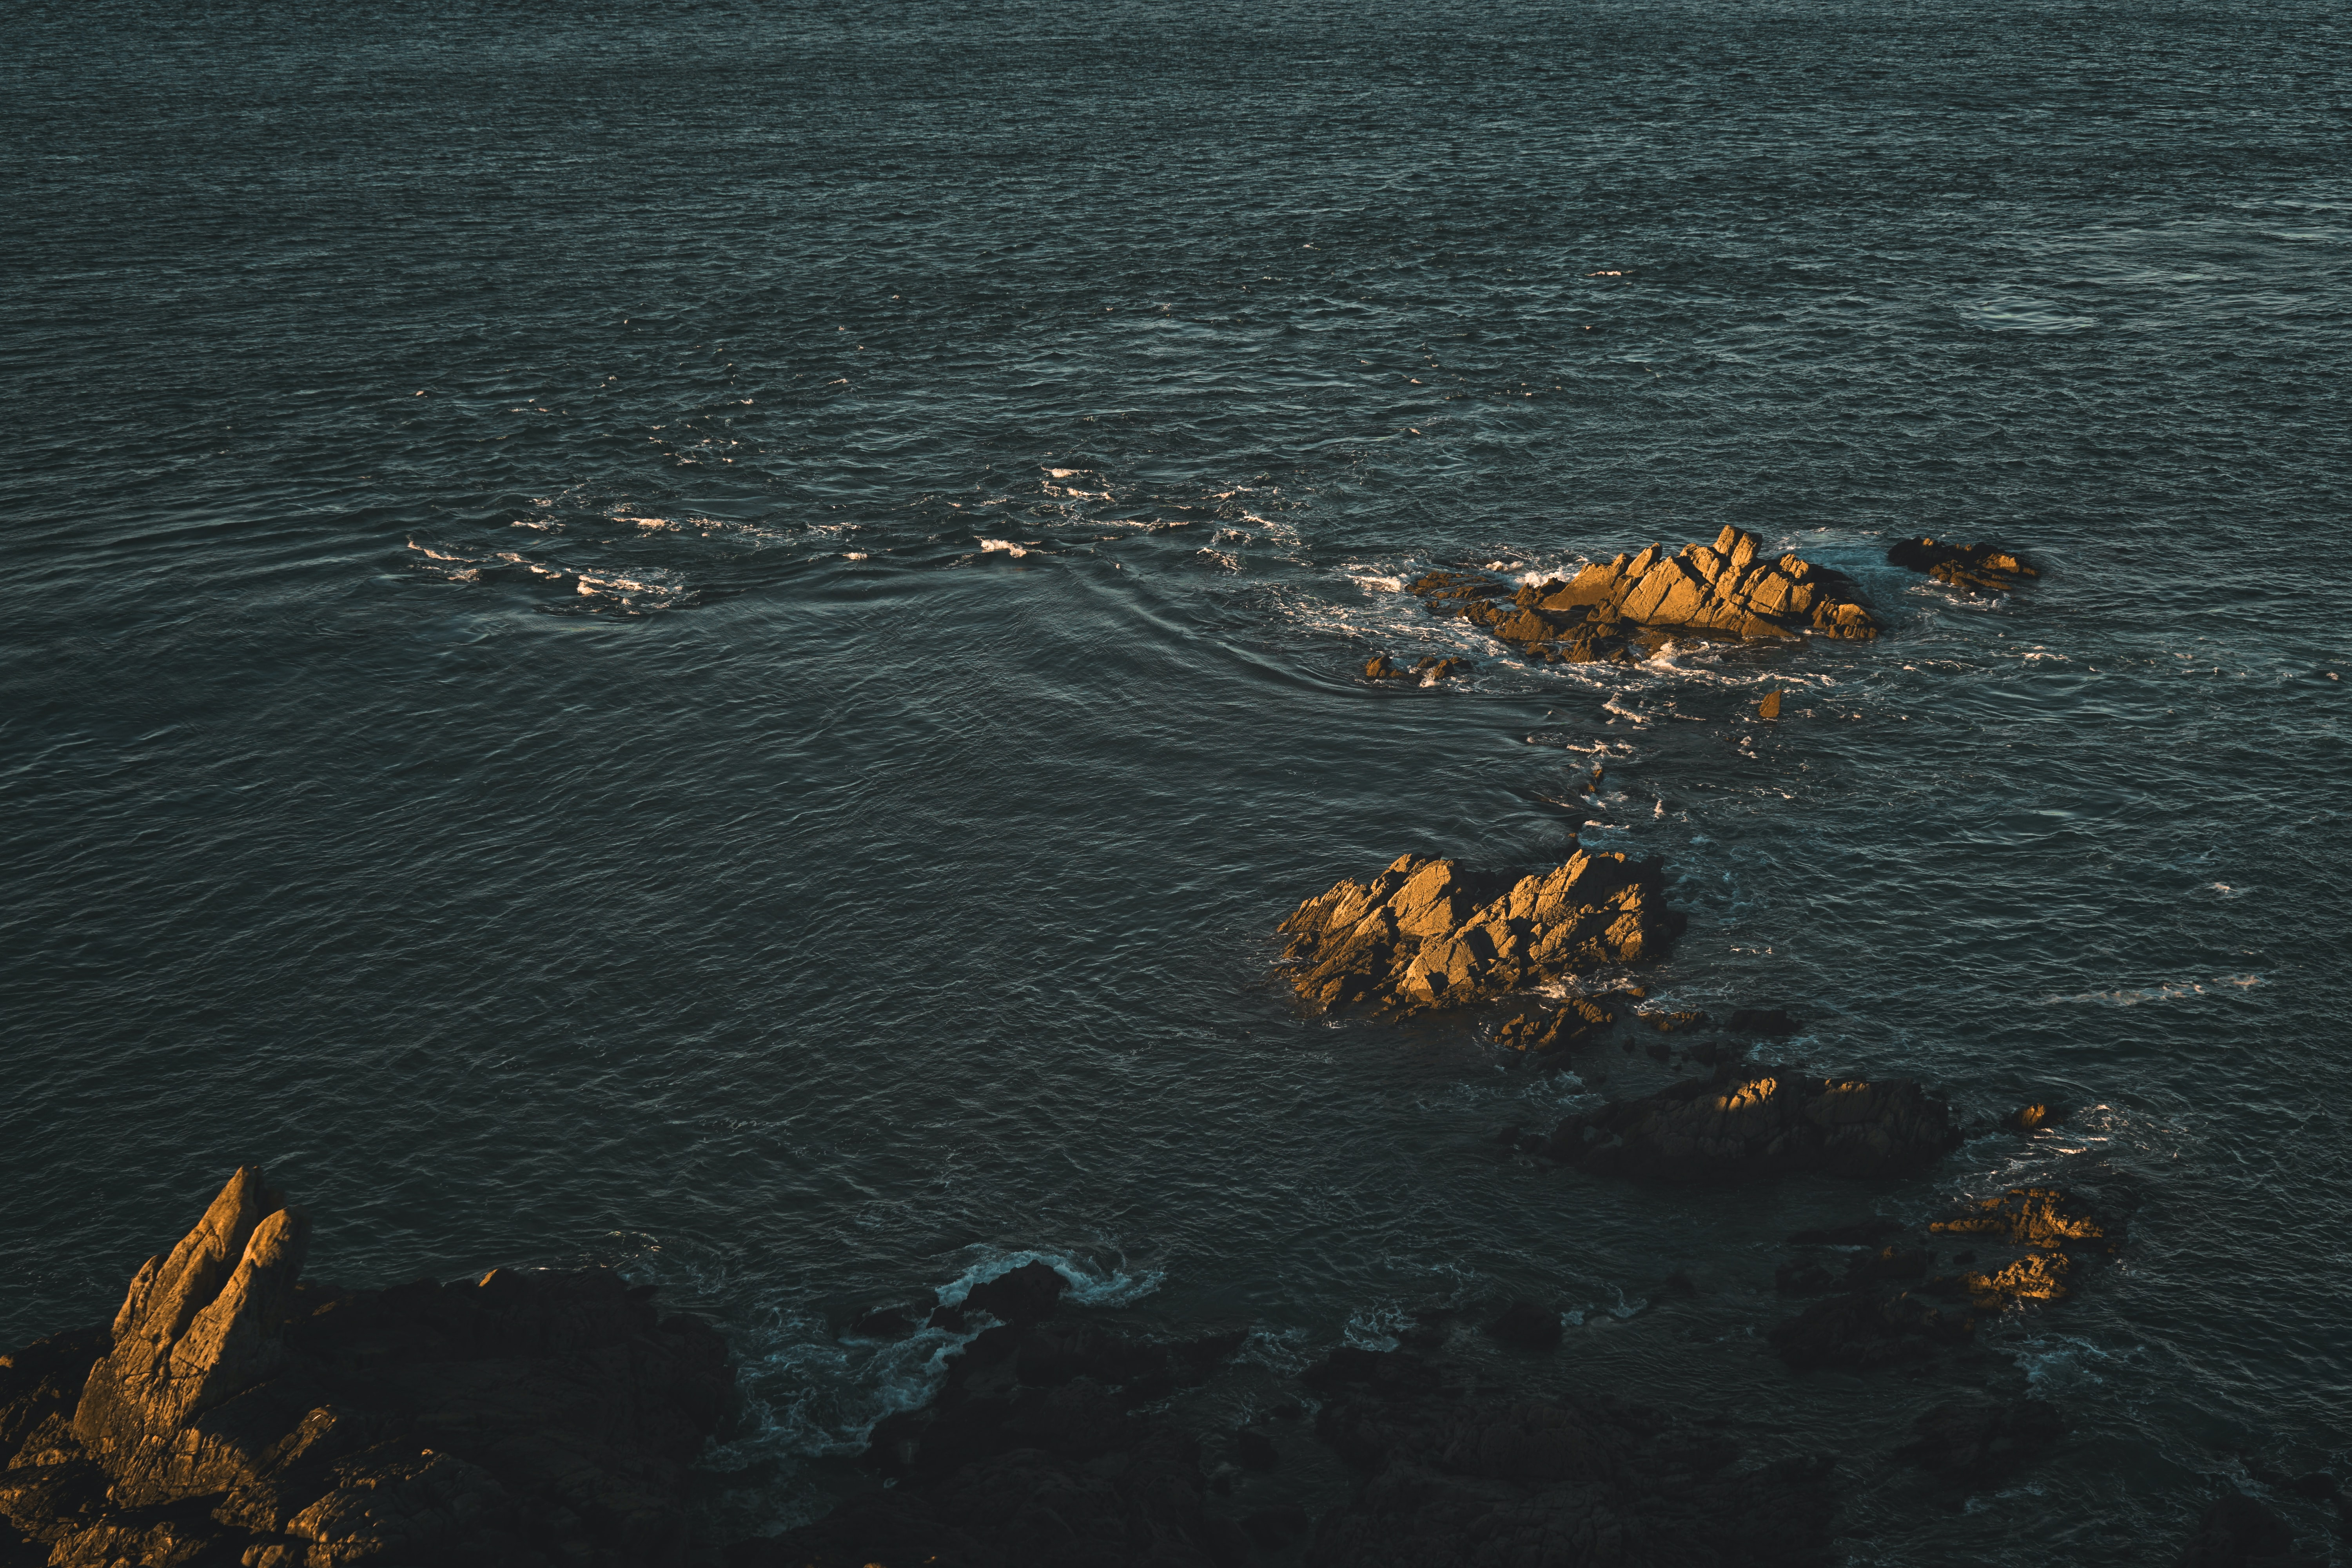 aerial photography of seashore near rock